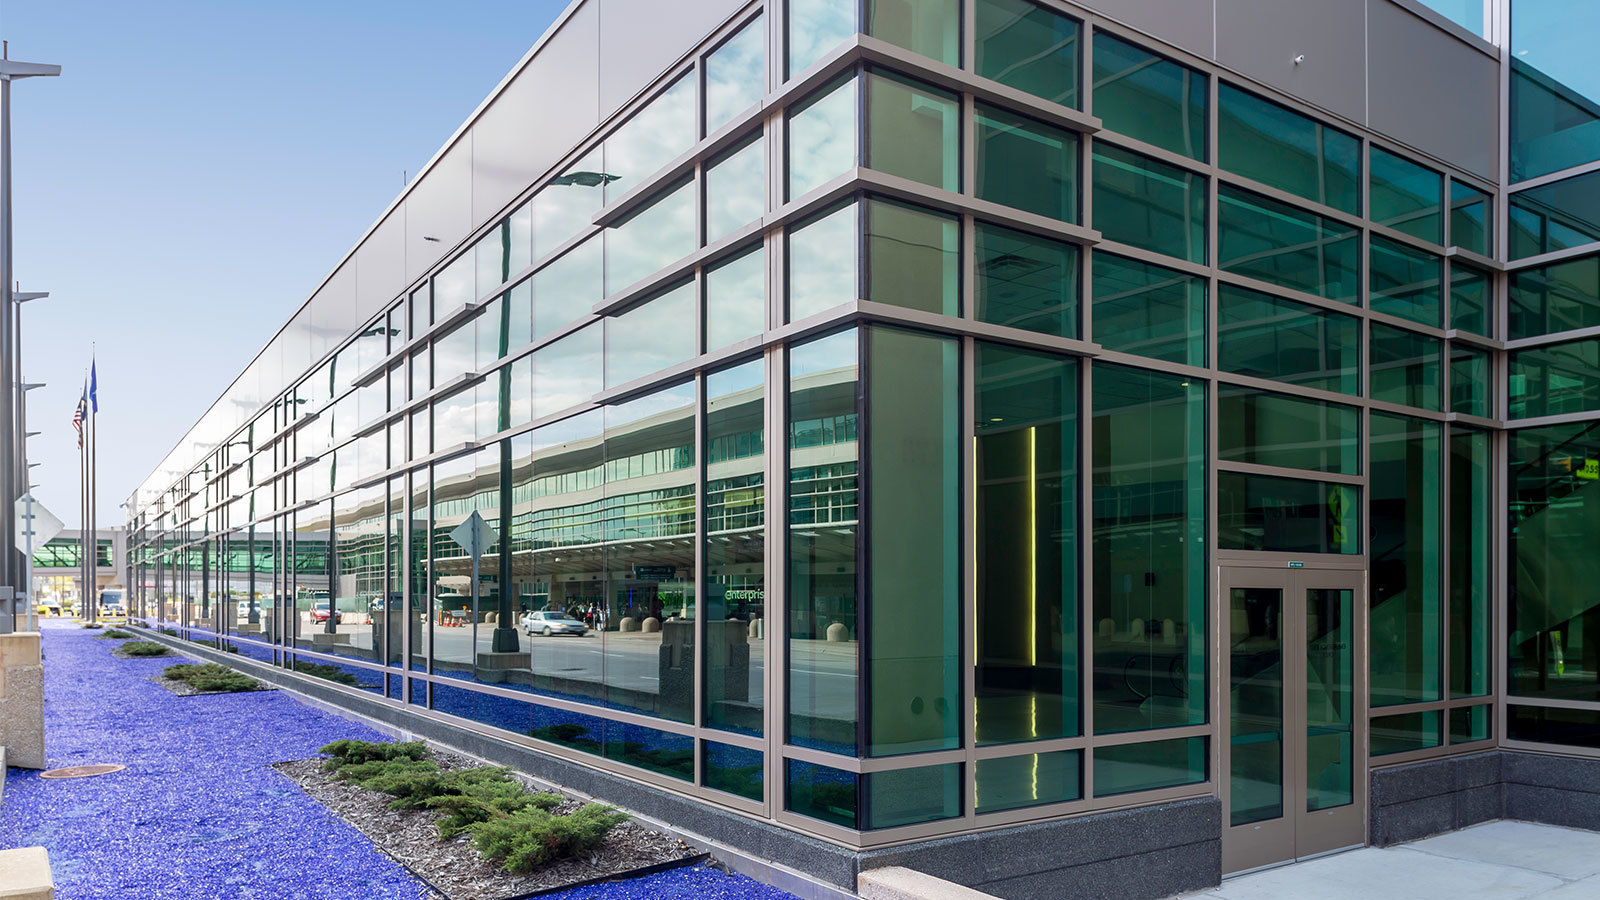 2,700 square feet of SageGlass® was installed during the remodel of the Lindberg Terminal at the Minneapolis-St. Paul International Airport, to reduce solar heat gain and glare for travelers and staff.